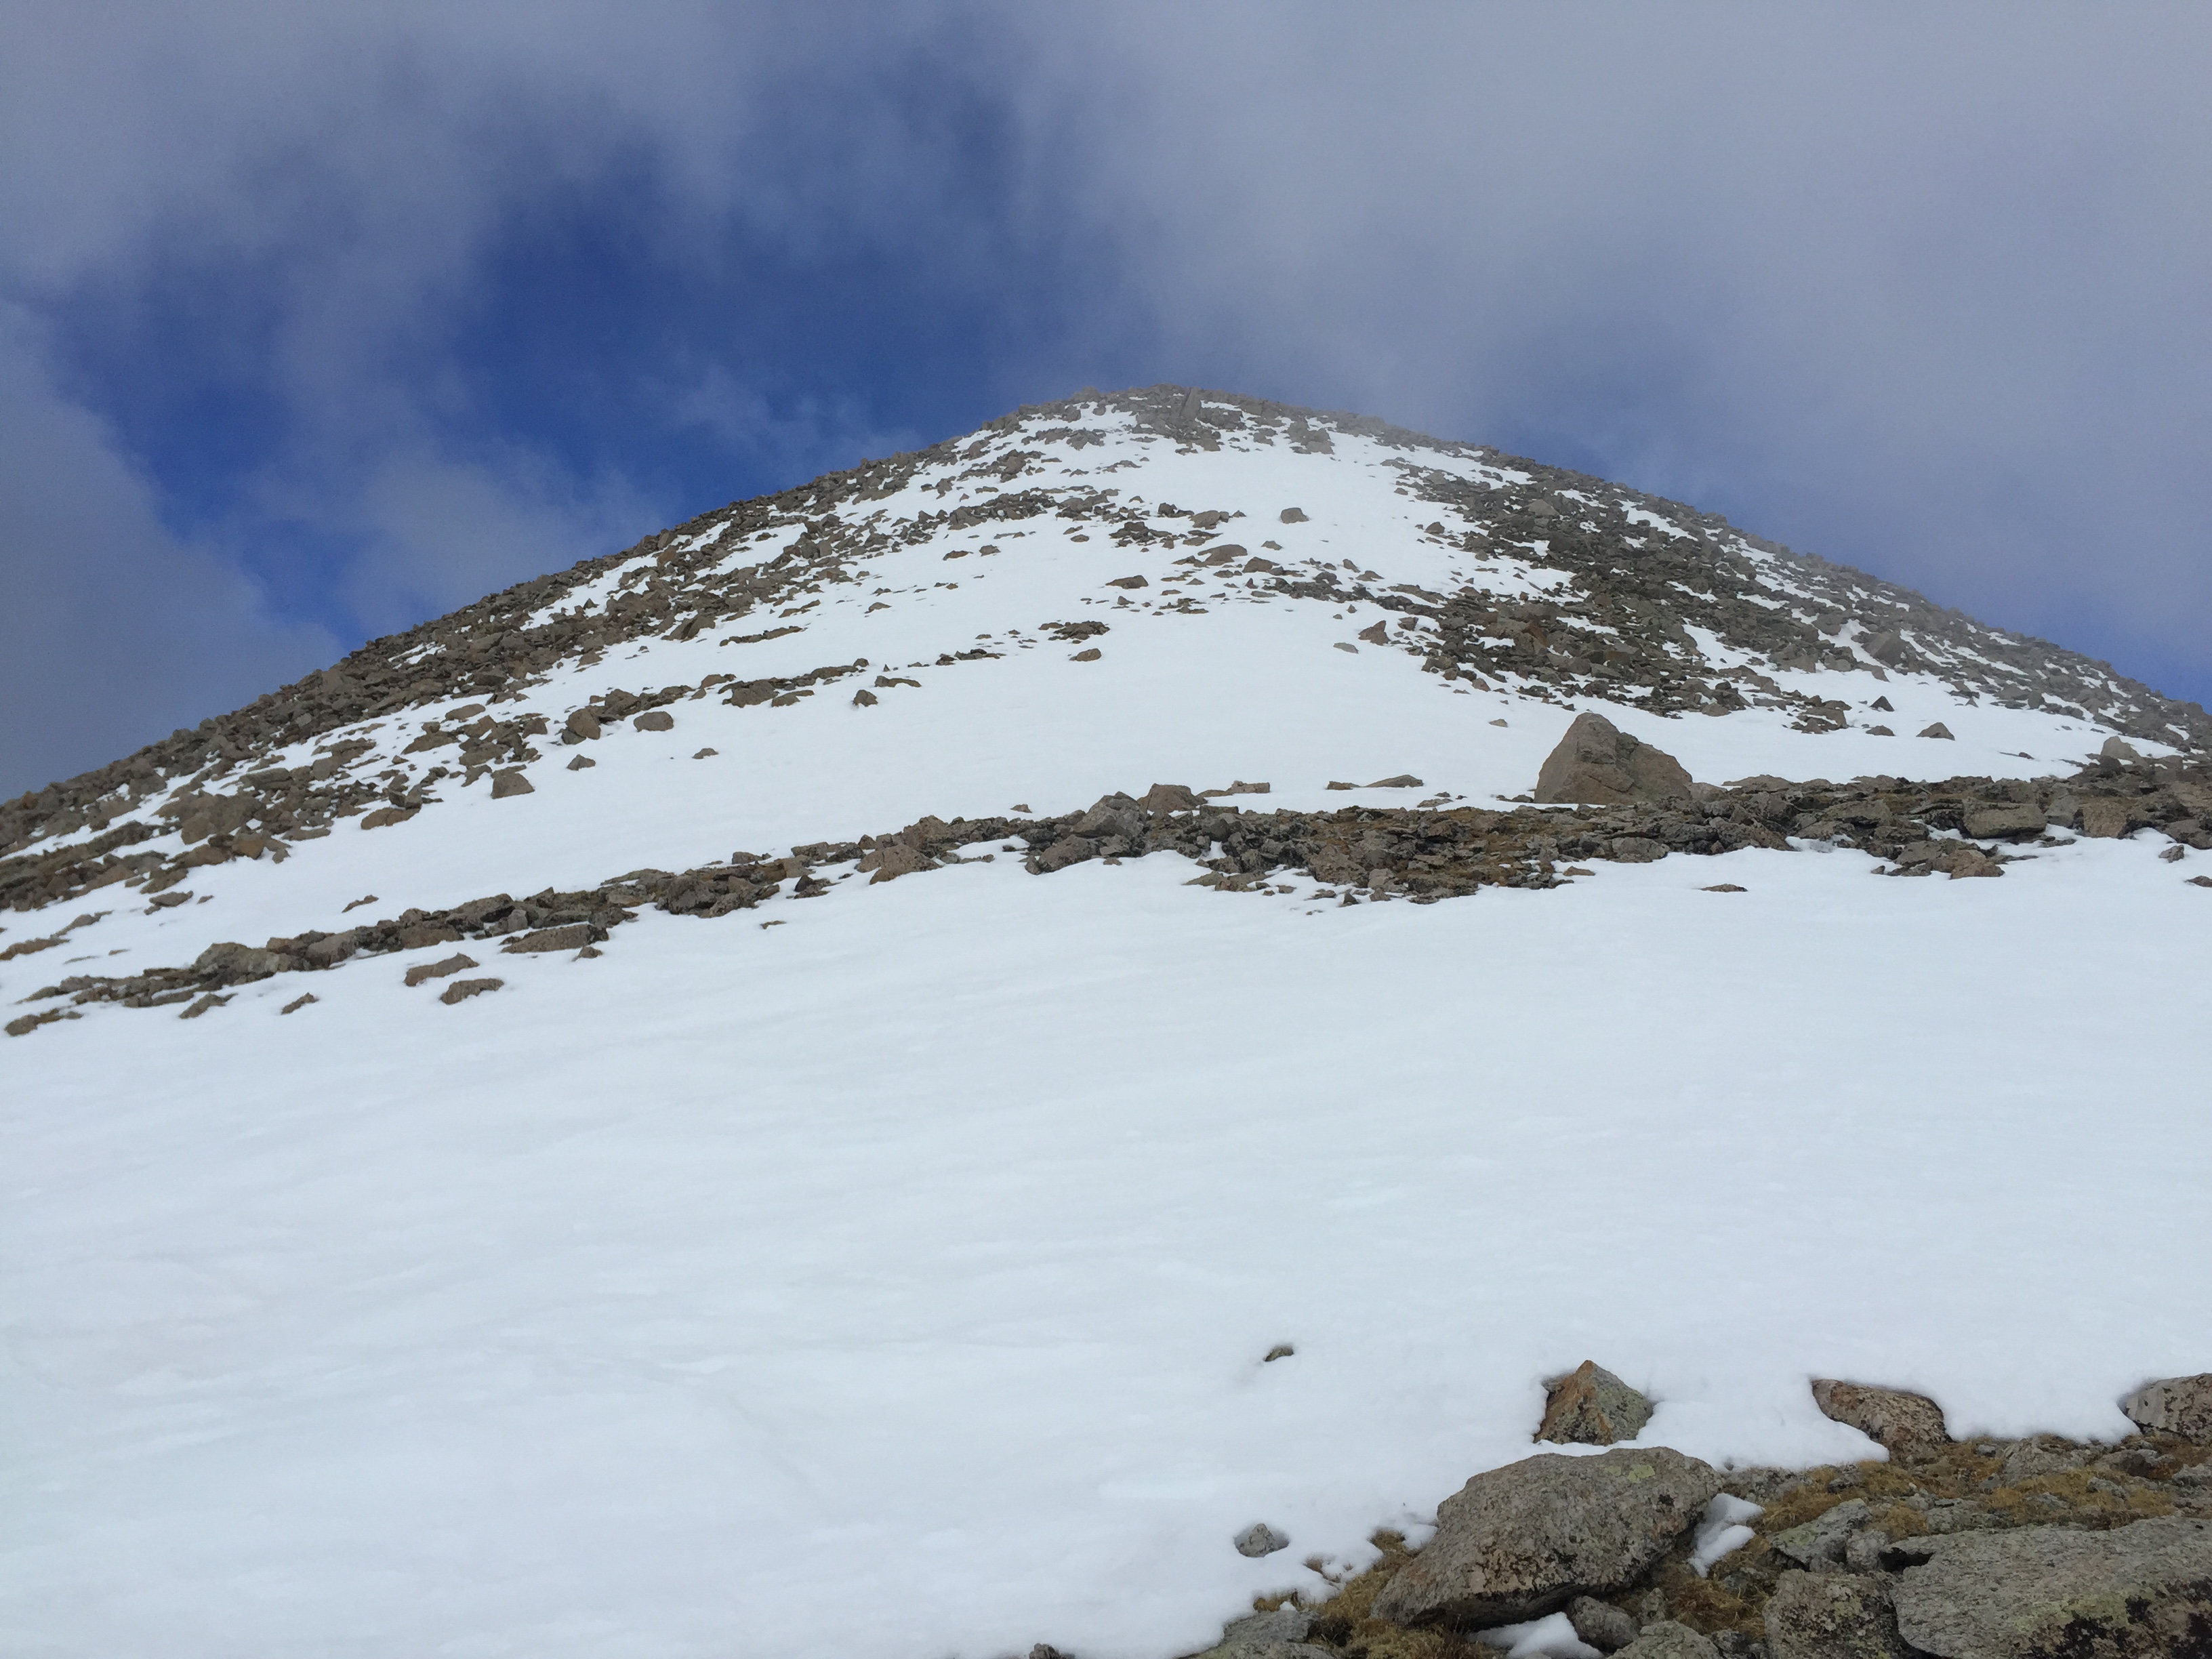 Approaching the top of Shavano on the East Ridge.